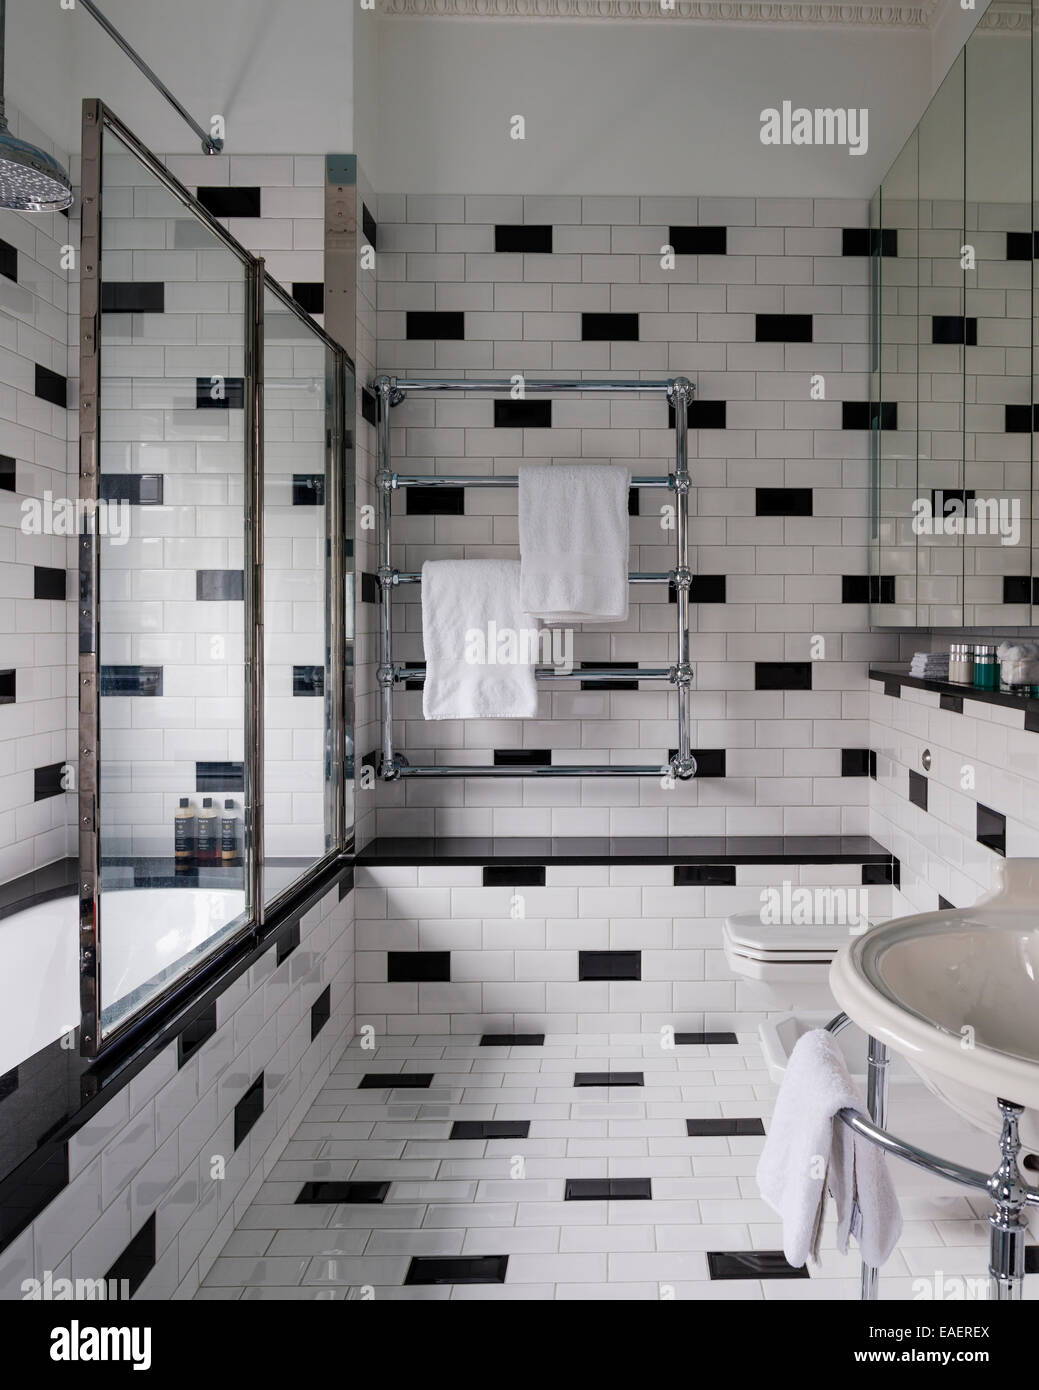 1940u0027s Style Bathroom From Drummonds With Black And White Brick Formation  Tile Work